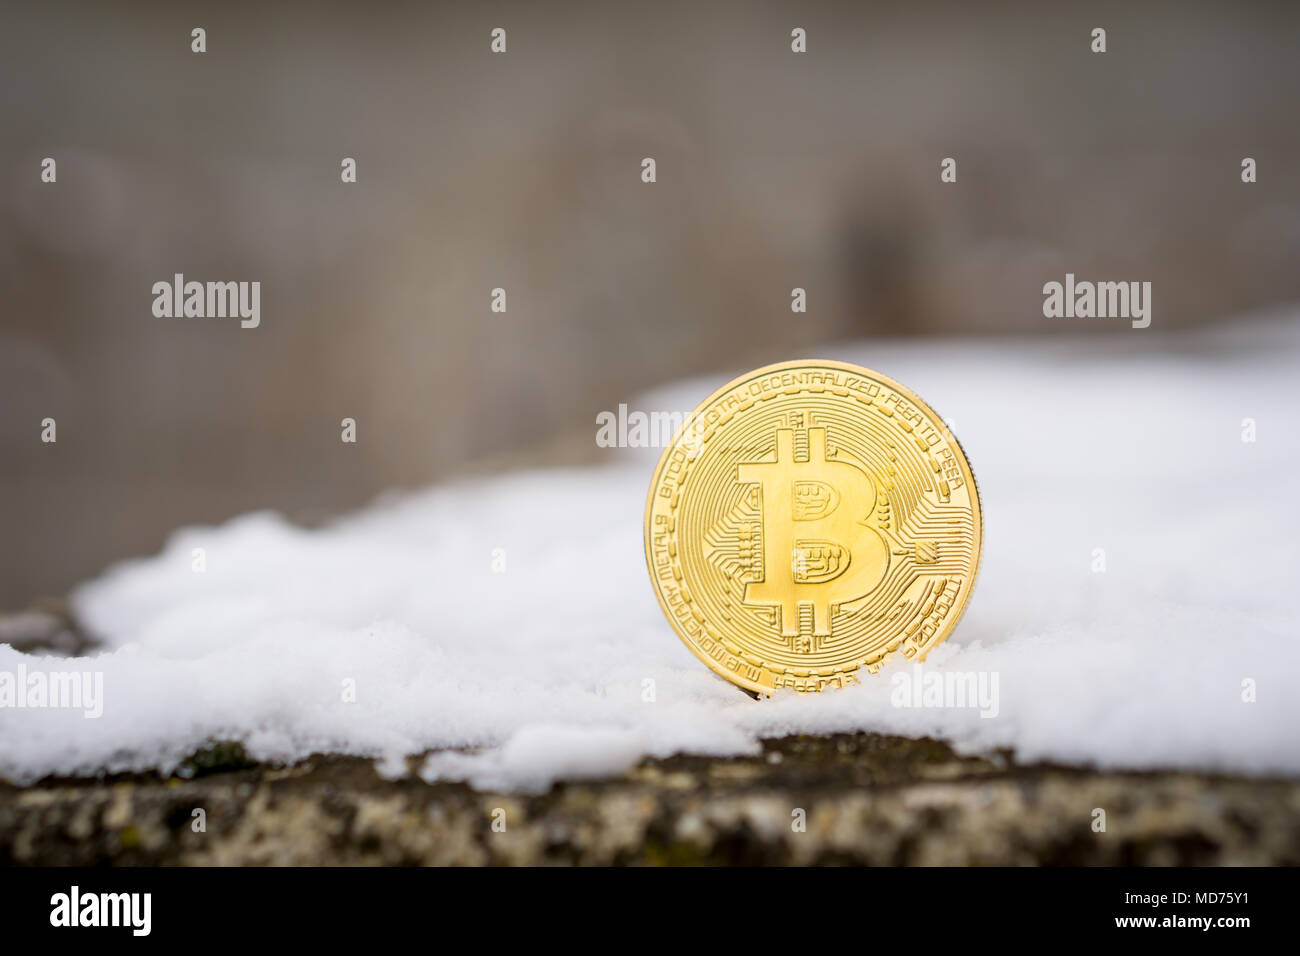 A gold Bitcoin placed in snow on concrete. Isolated scene of  cryptocurrency in snow - Stock Image